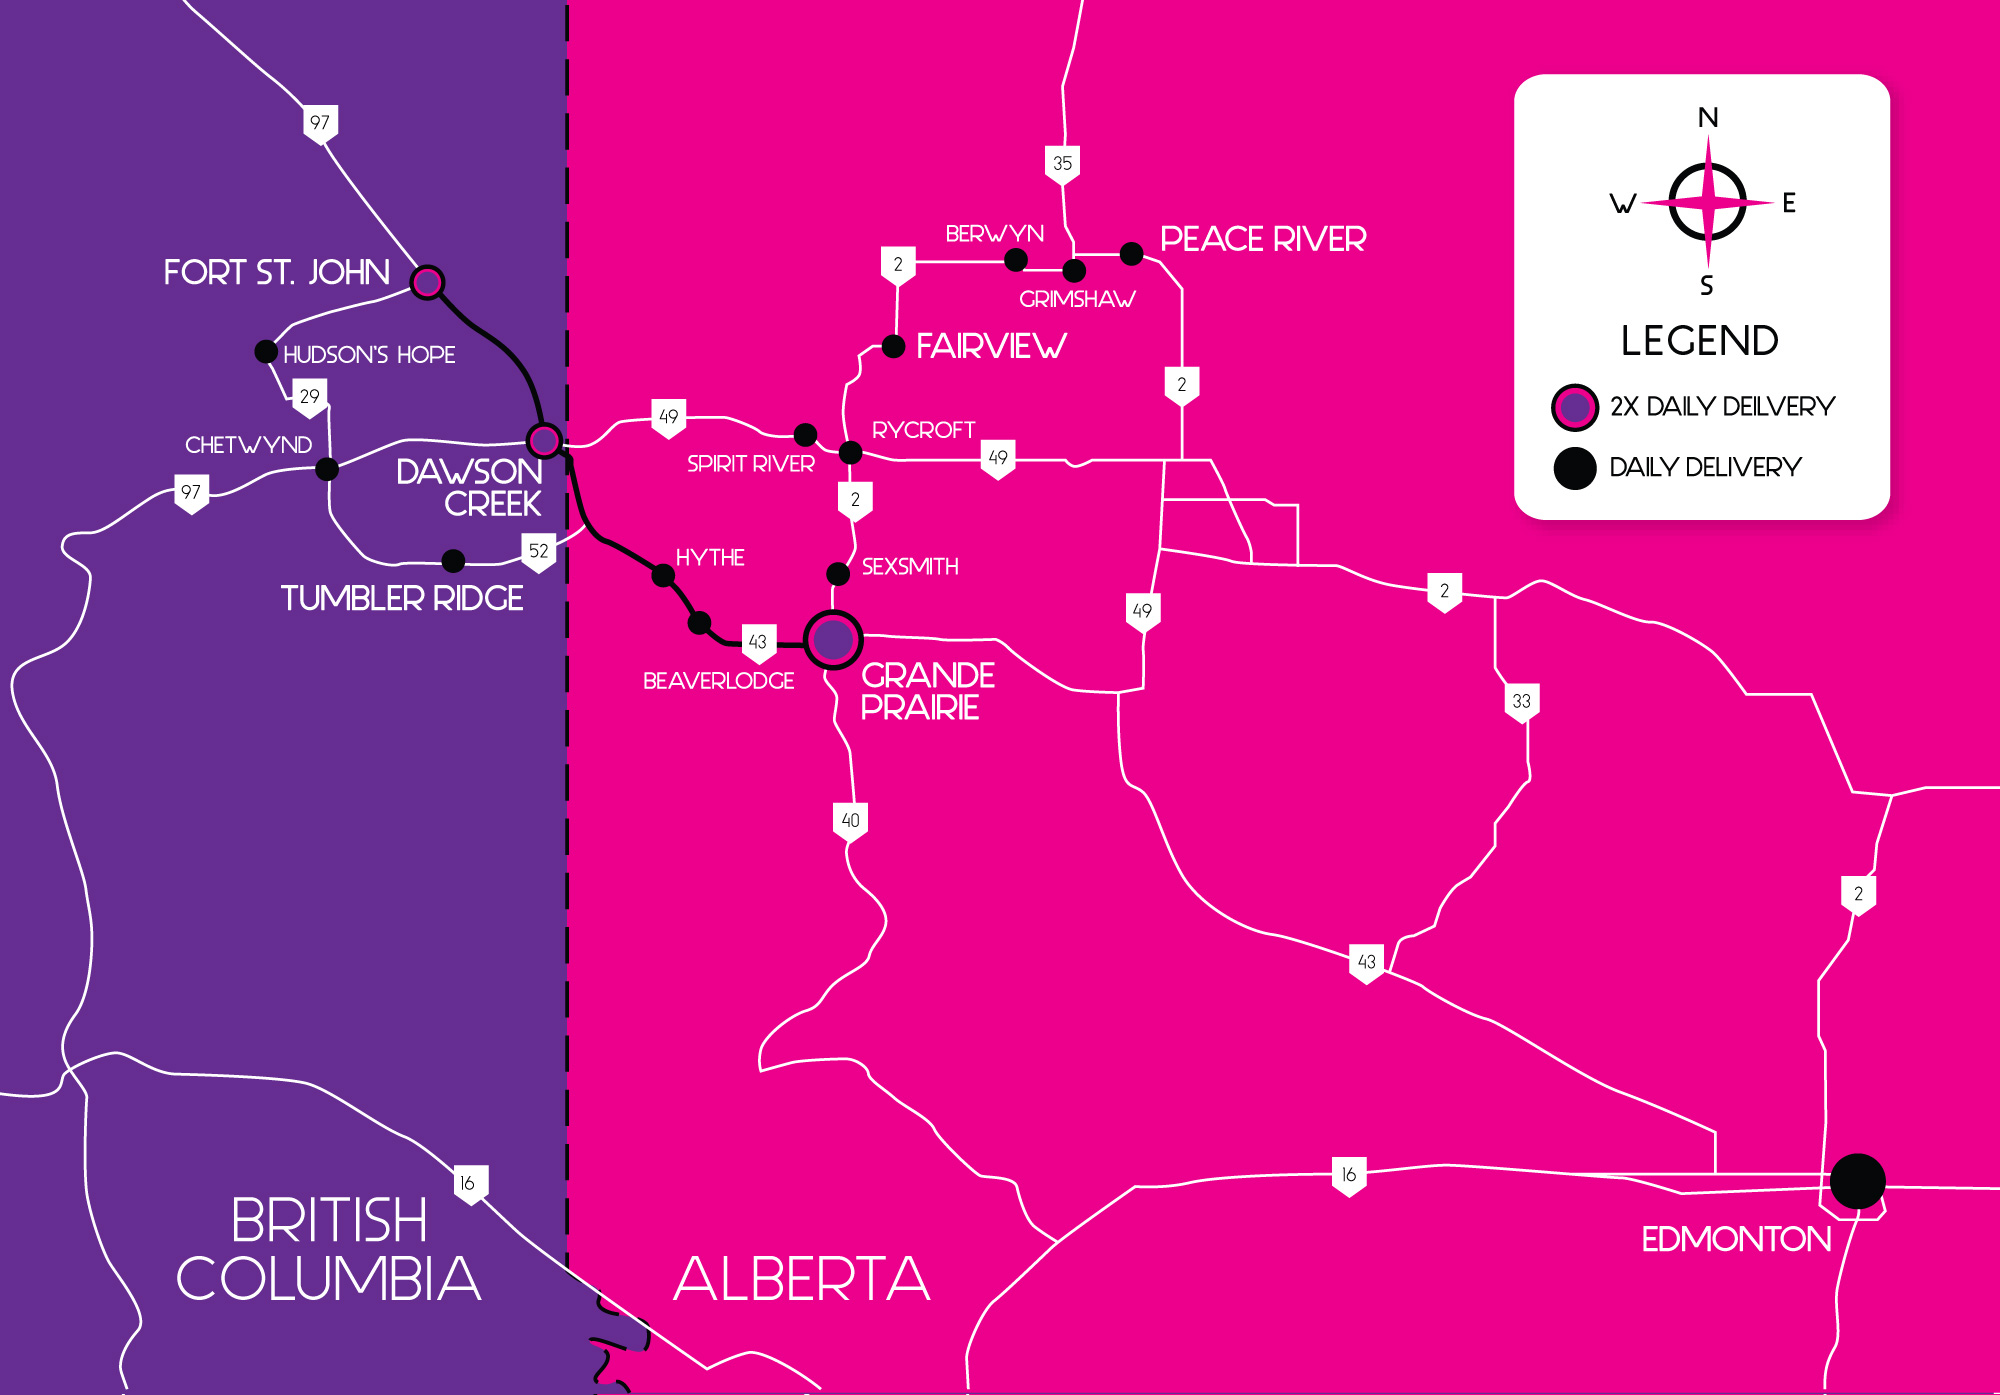 RCT Delivery Grande Prairie and Peace Country Service Area Map